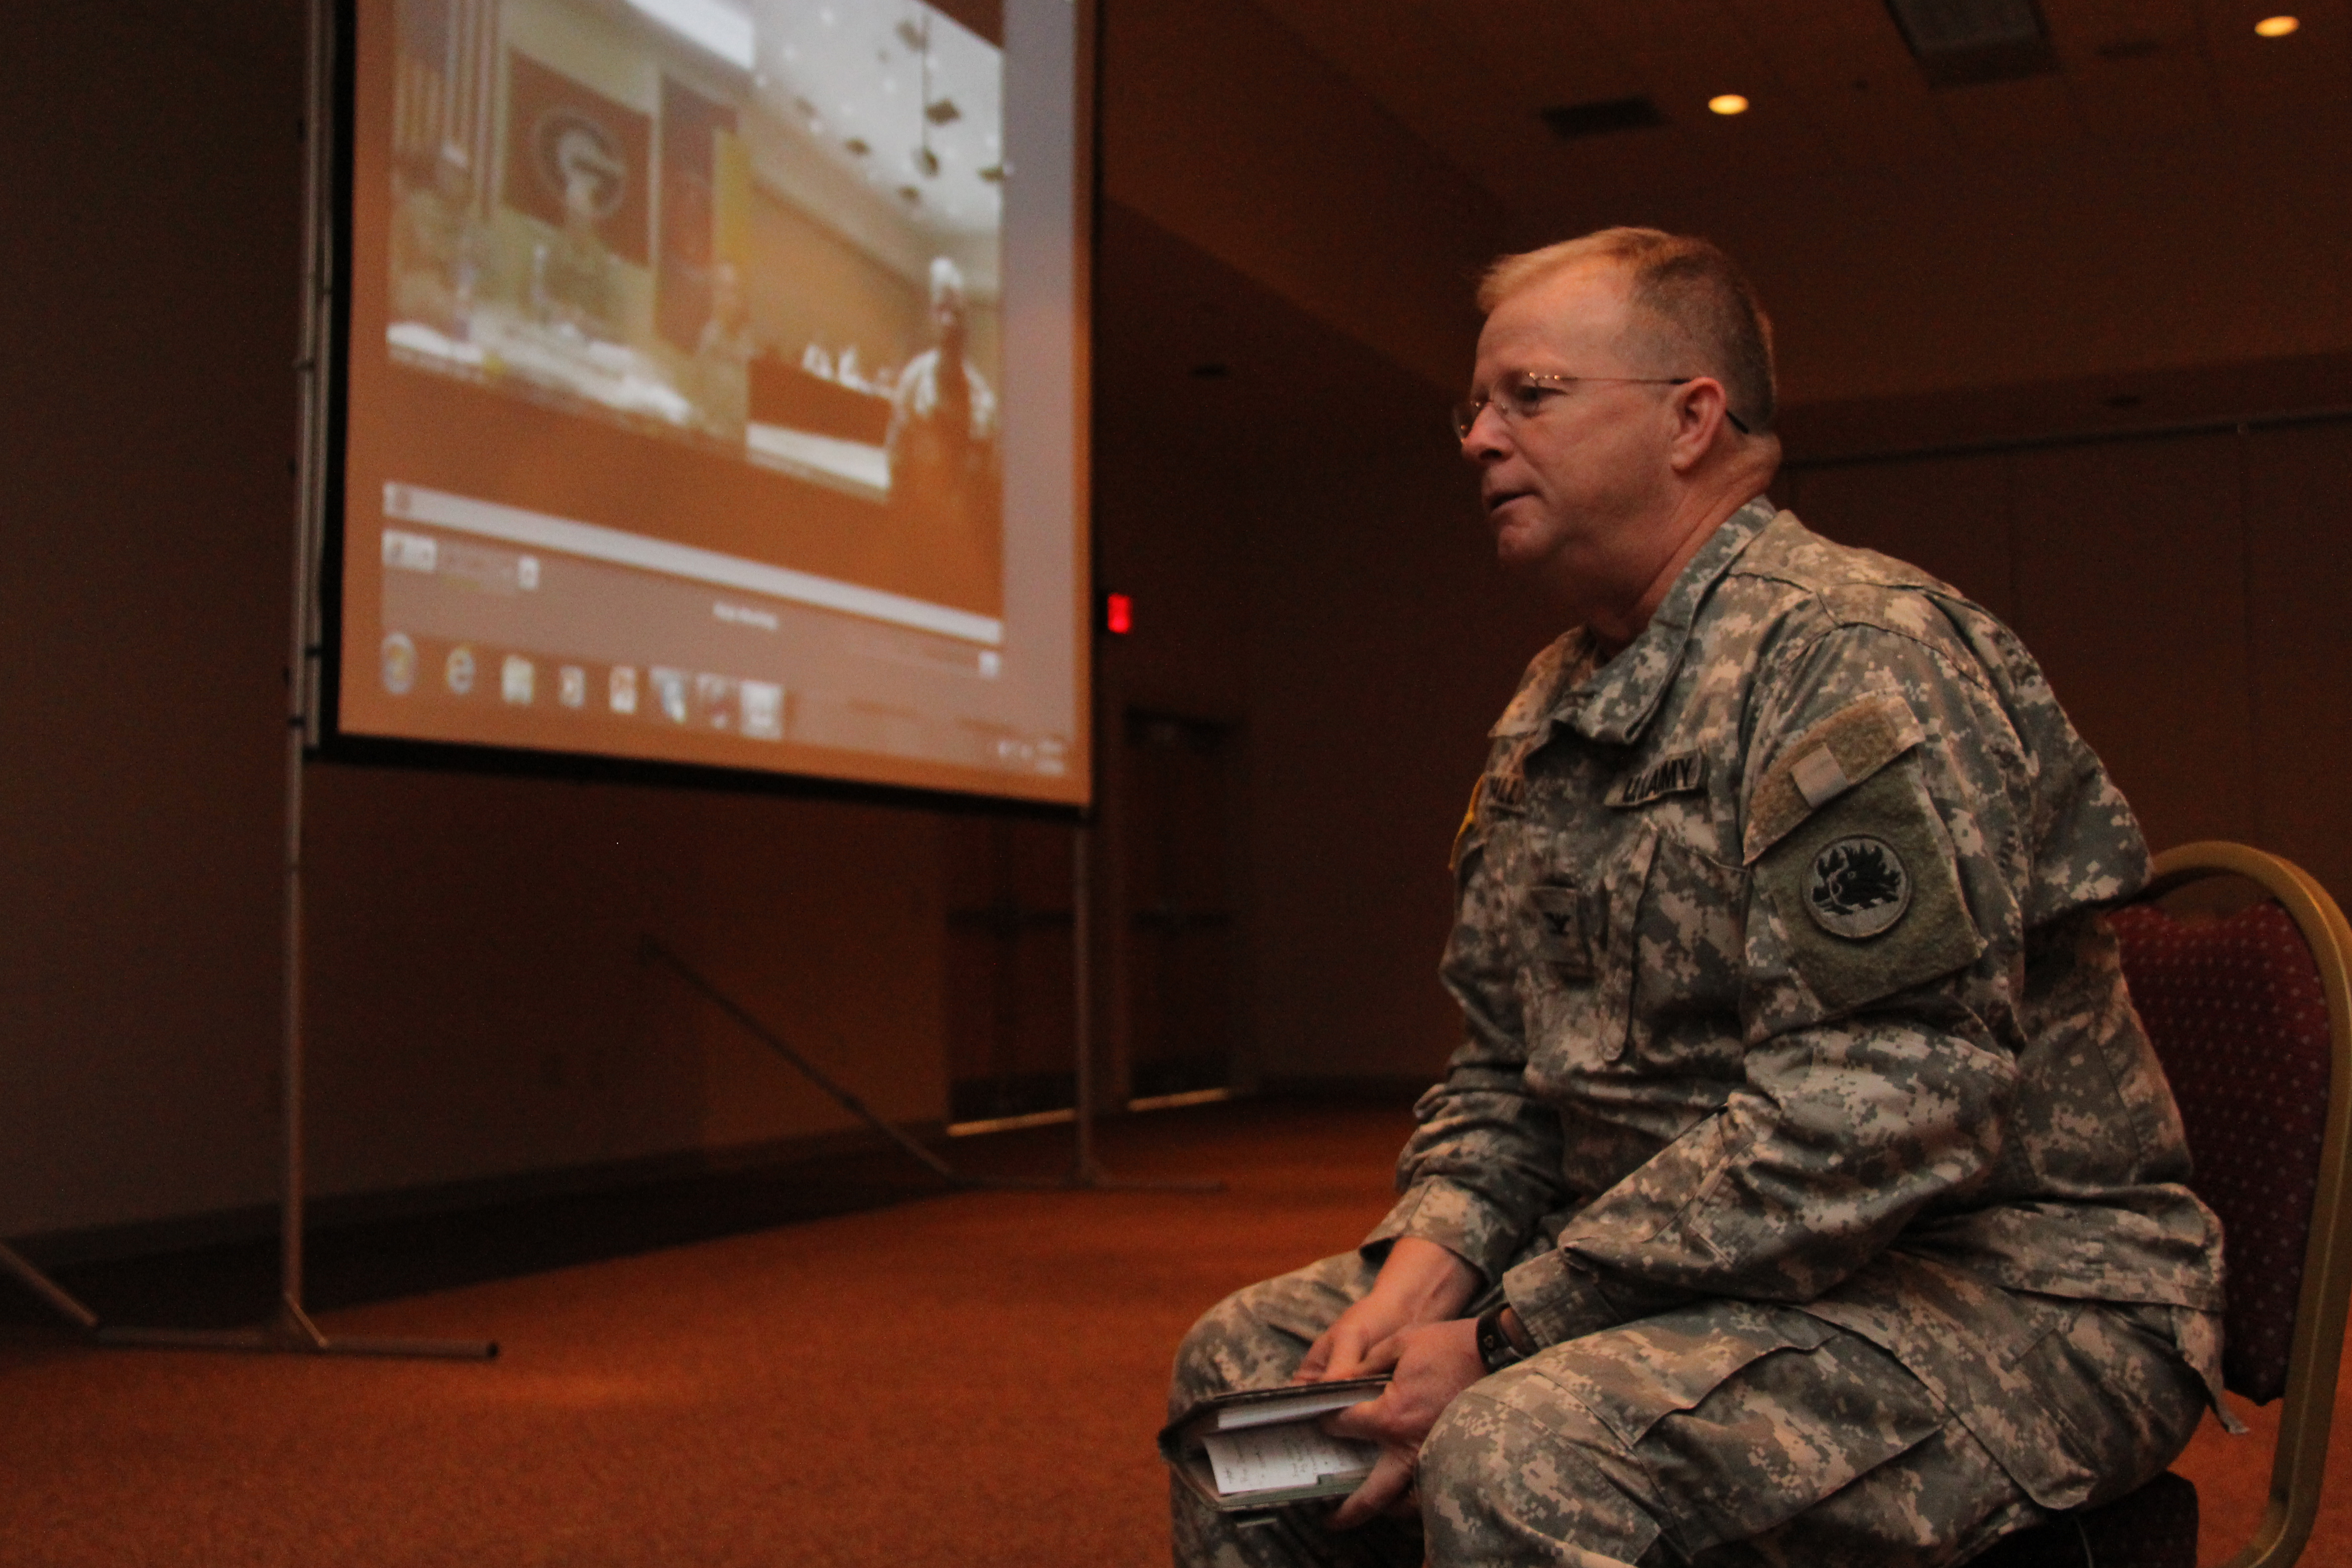 Colonel Craig McGalliard speaks to members of Georgia's first Agribusiness Development Team in Afghanistan via videoconference. McGalliard leads the 265th who will replace the current in-country team, the 201st out of Fort Gordon, later this year.